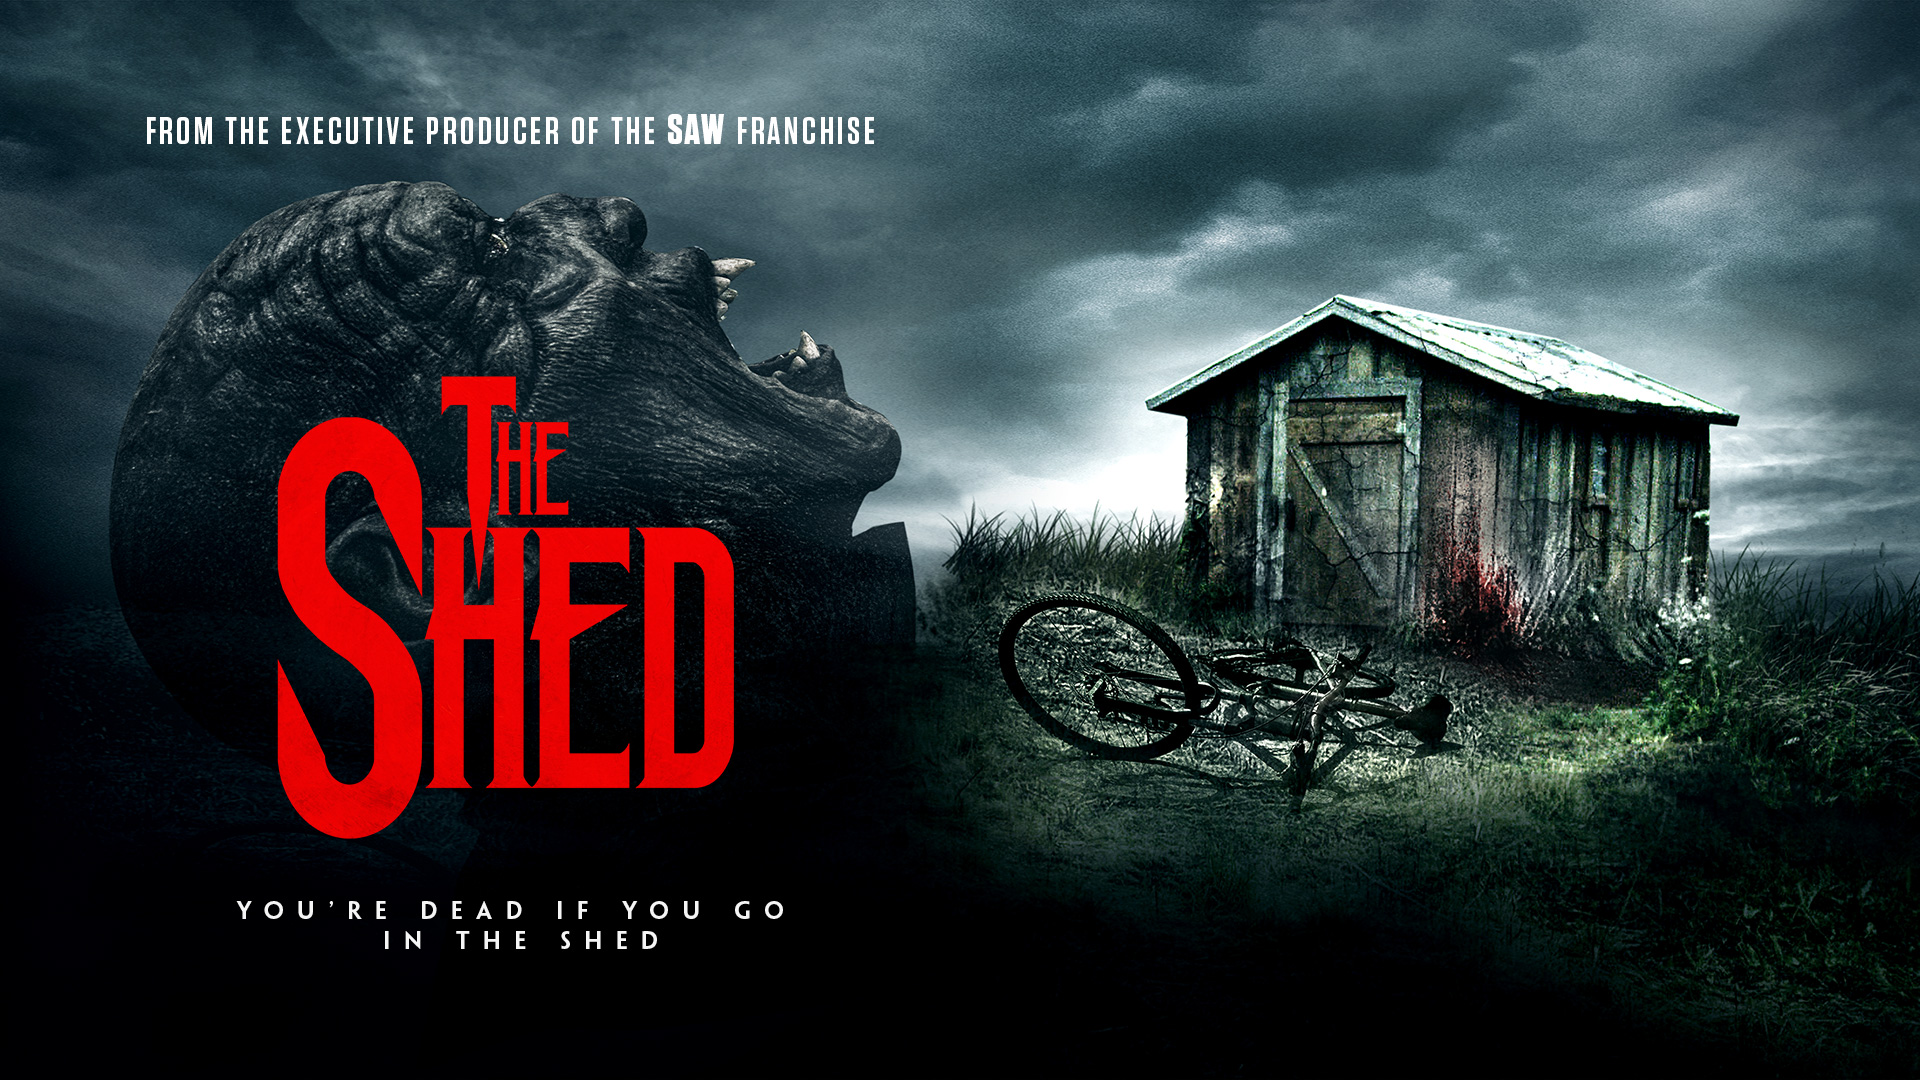 BEWARE THE EVIL WITHIN 'THE SHED'